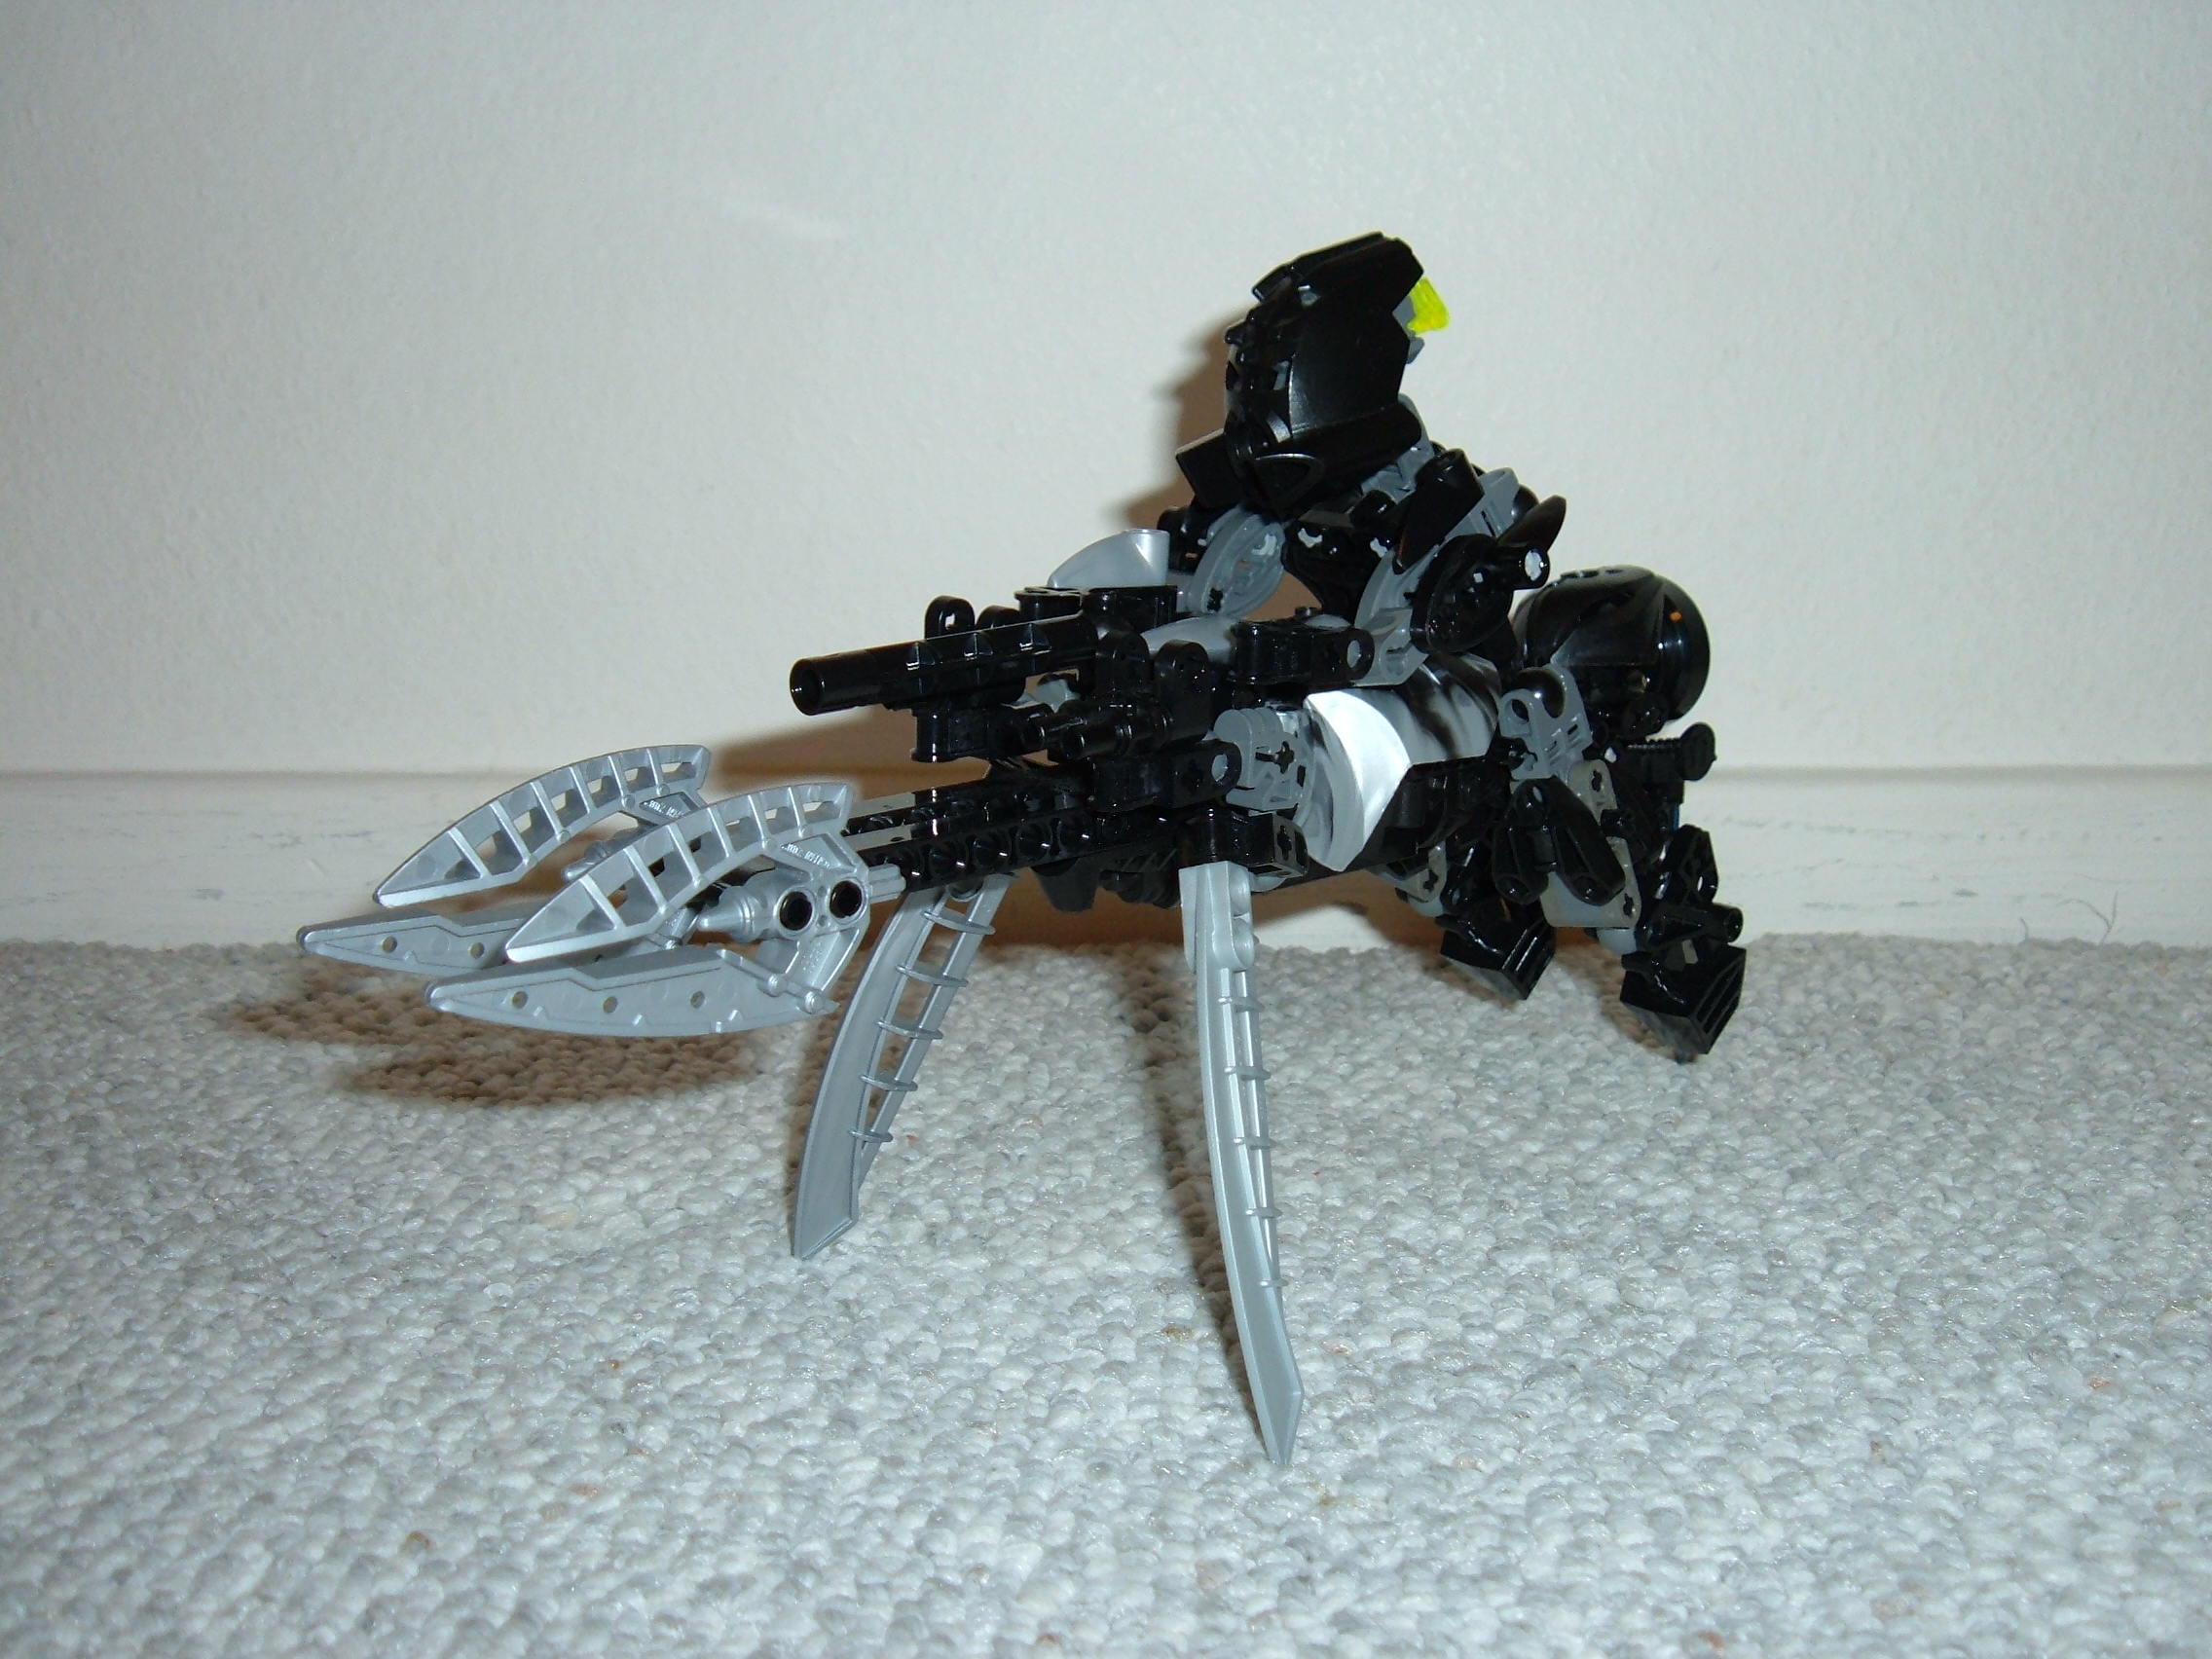 matoran_speeder_bike_002.jpg